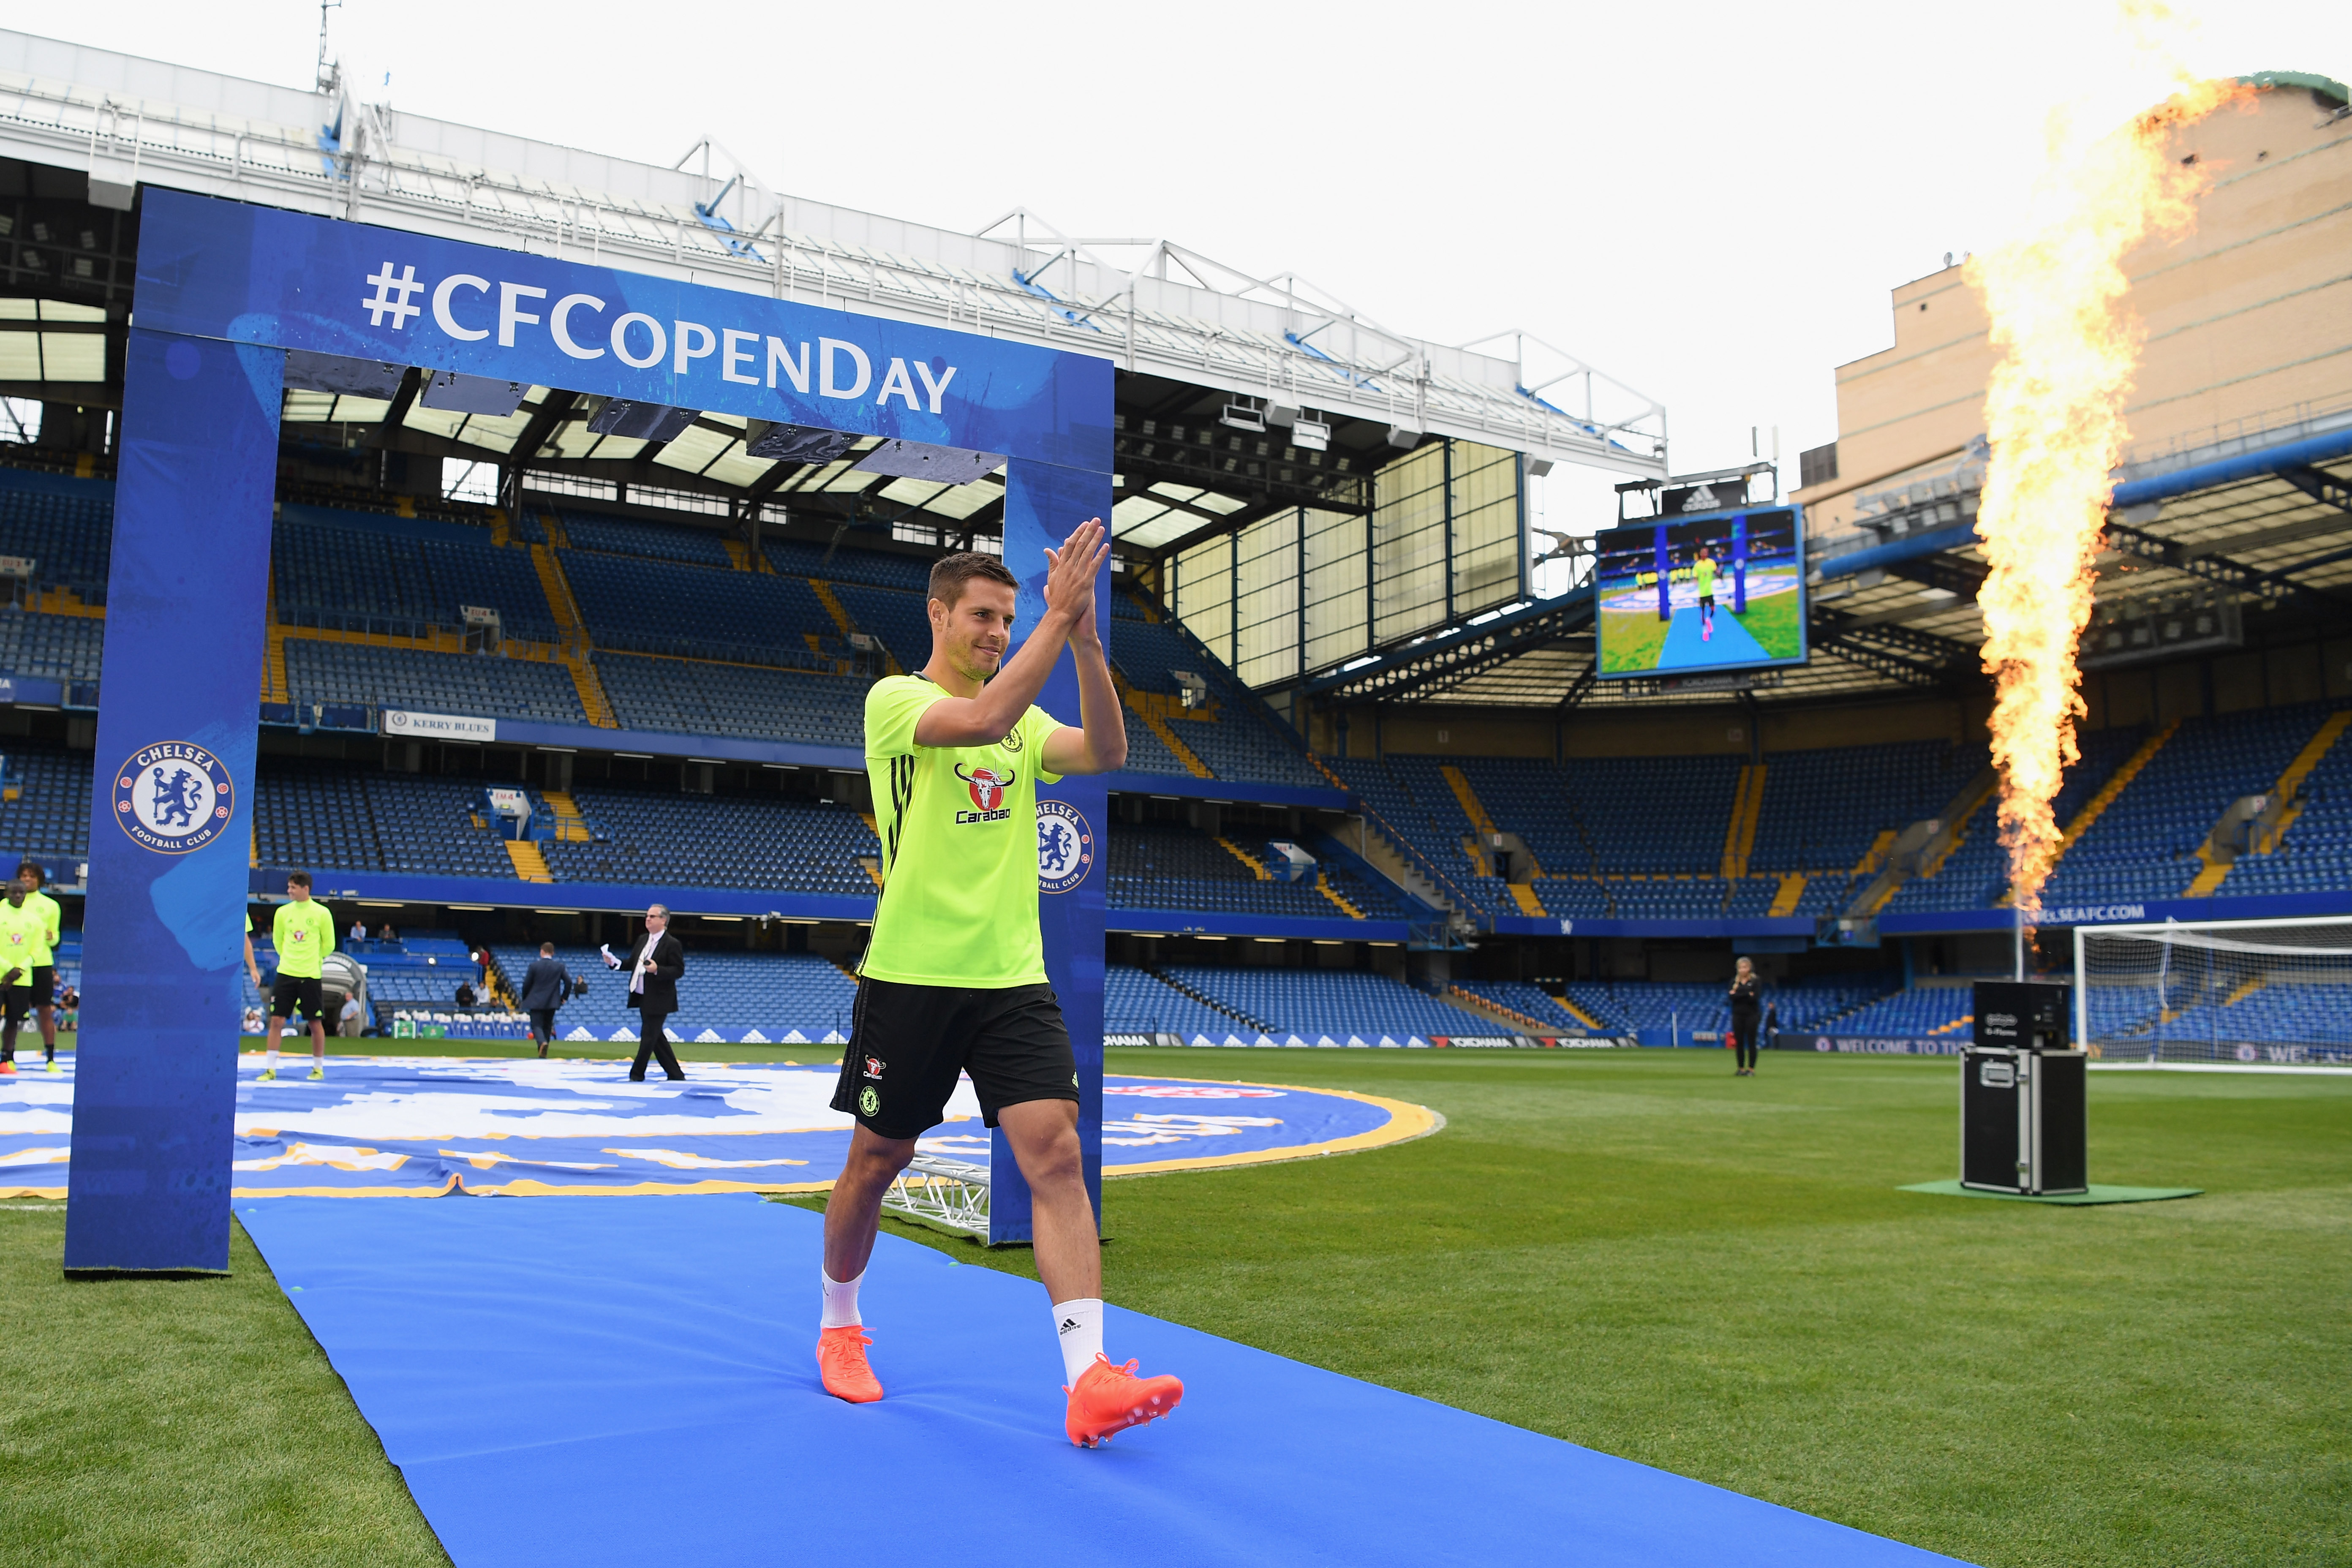 Chelsea to hold rare open training at Stamford Bridge